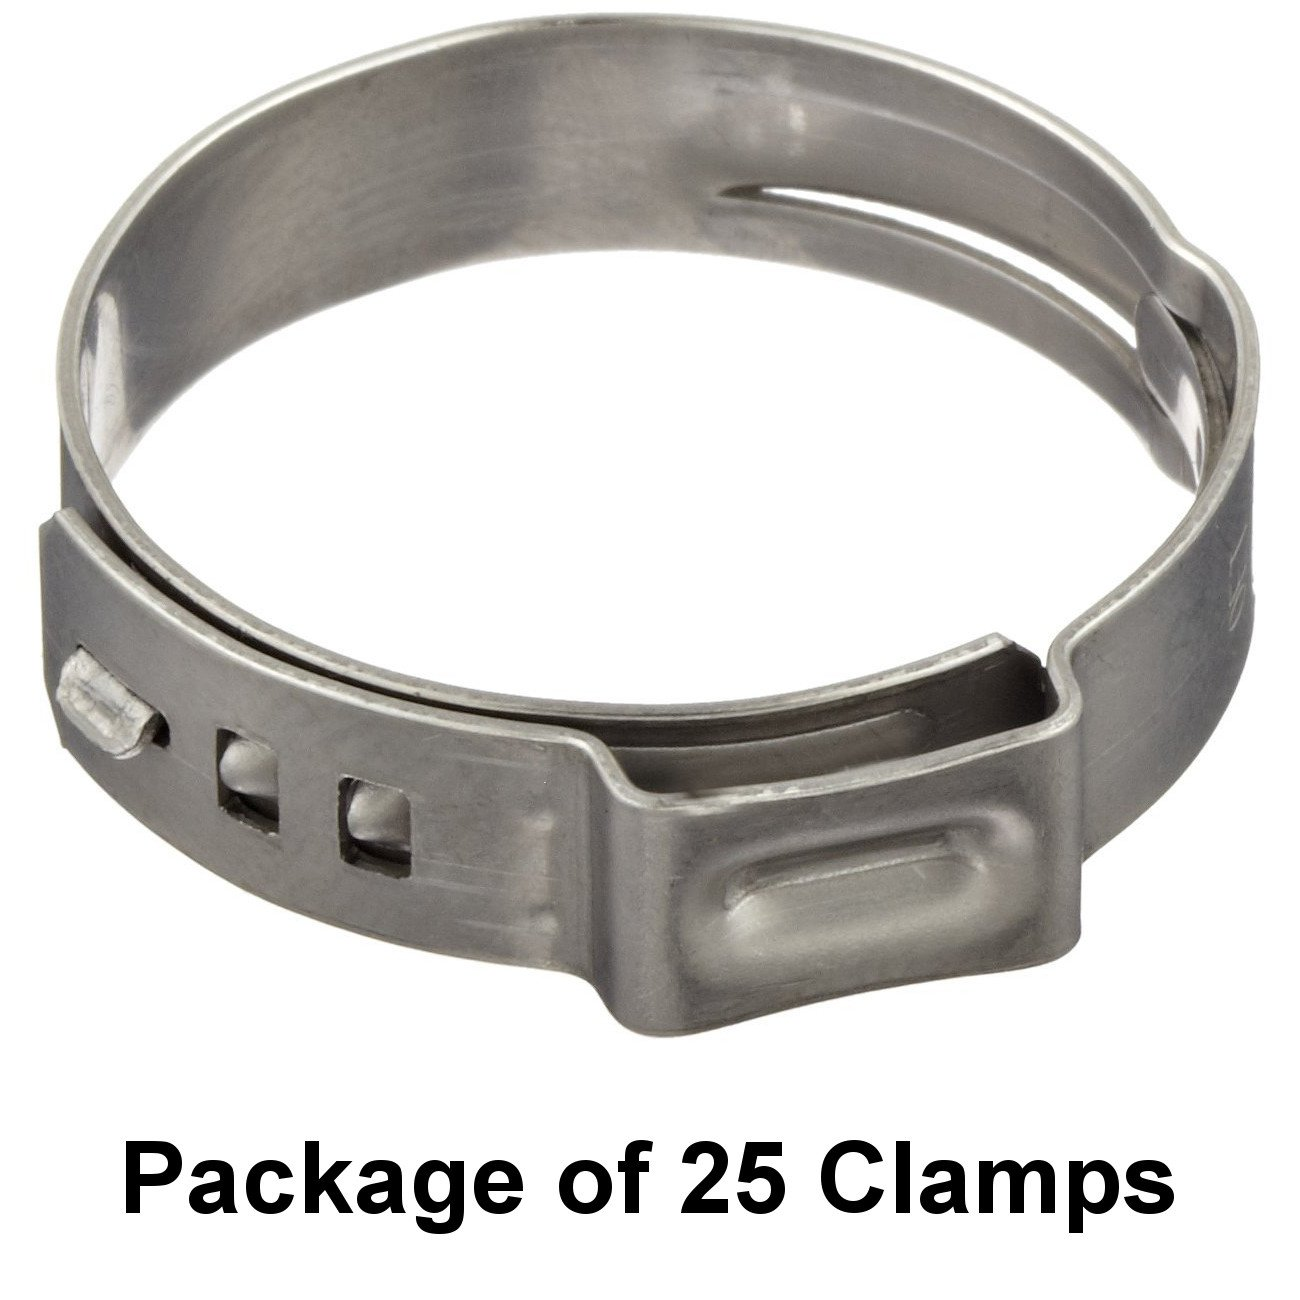 One Ear Open Closed Oetiker 16702493 Stepless Ear Clamp 7 mm Band Width Pack of 25 - 12.8 mm Clamp ID Range 10.3 mm